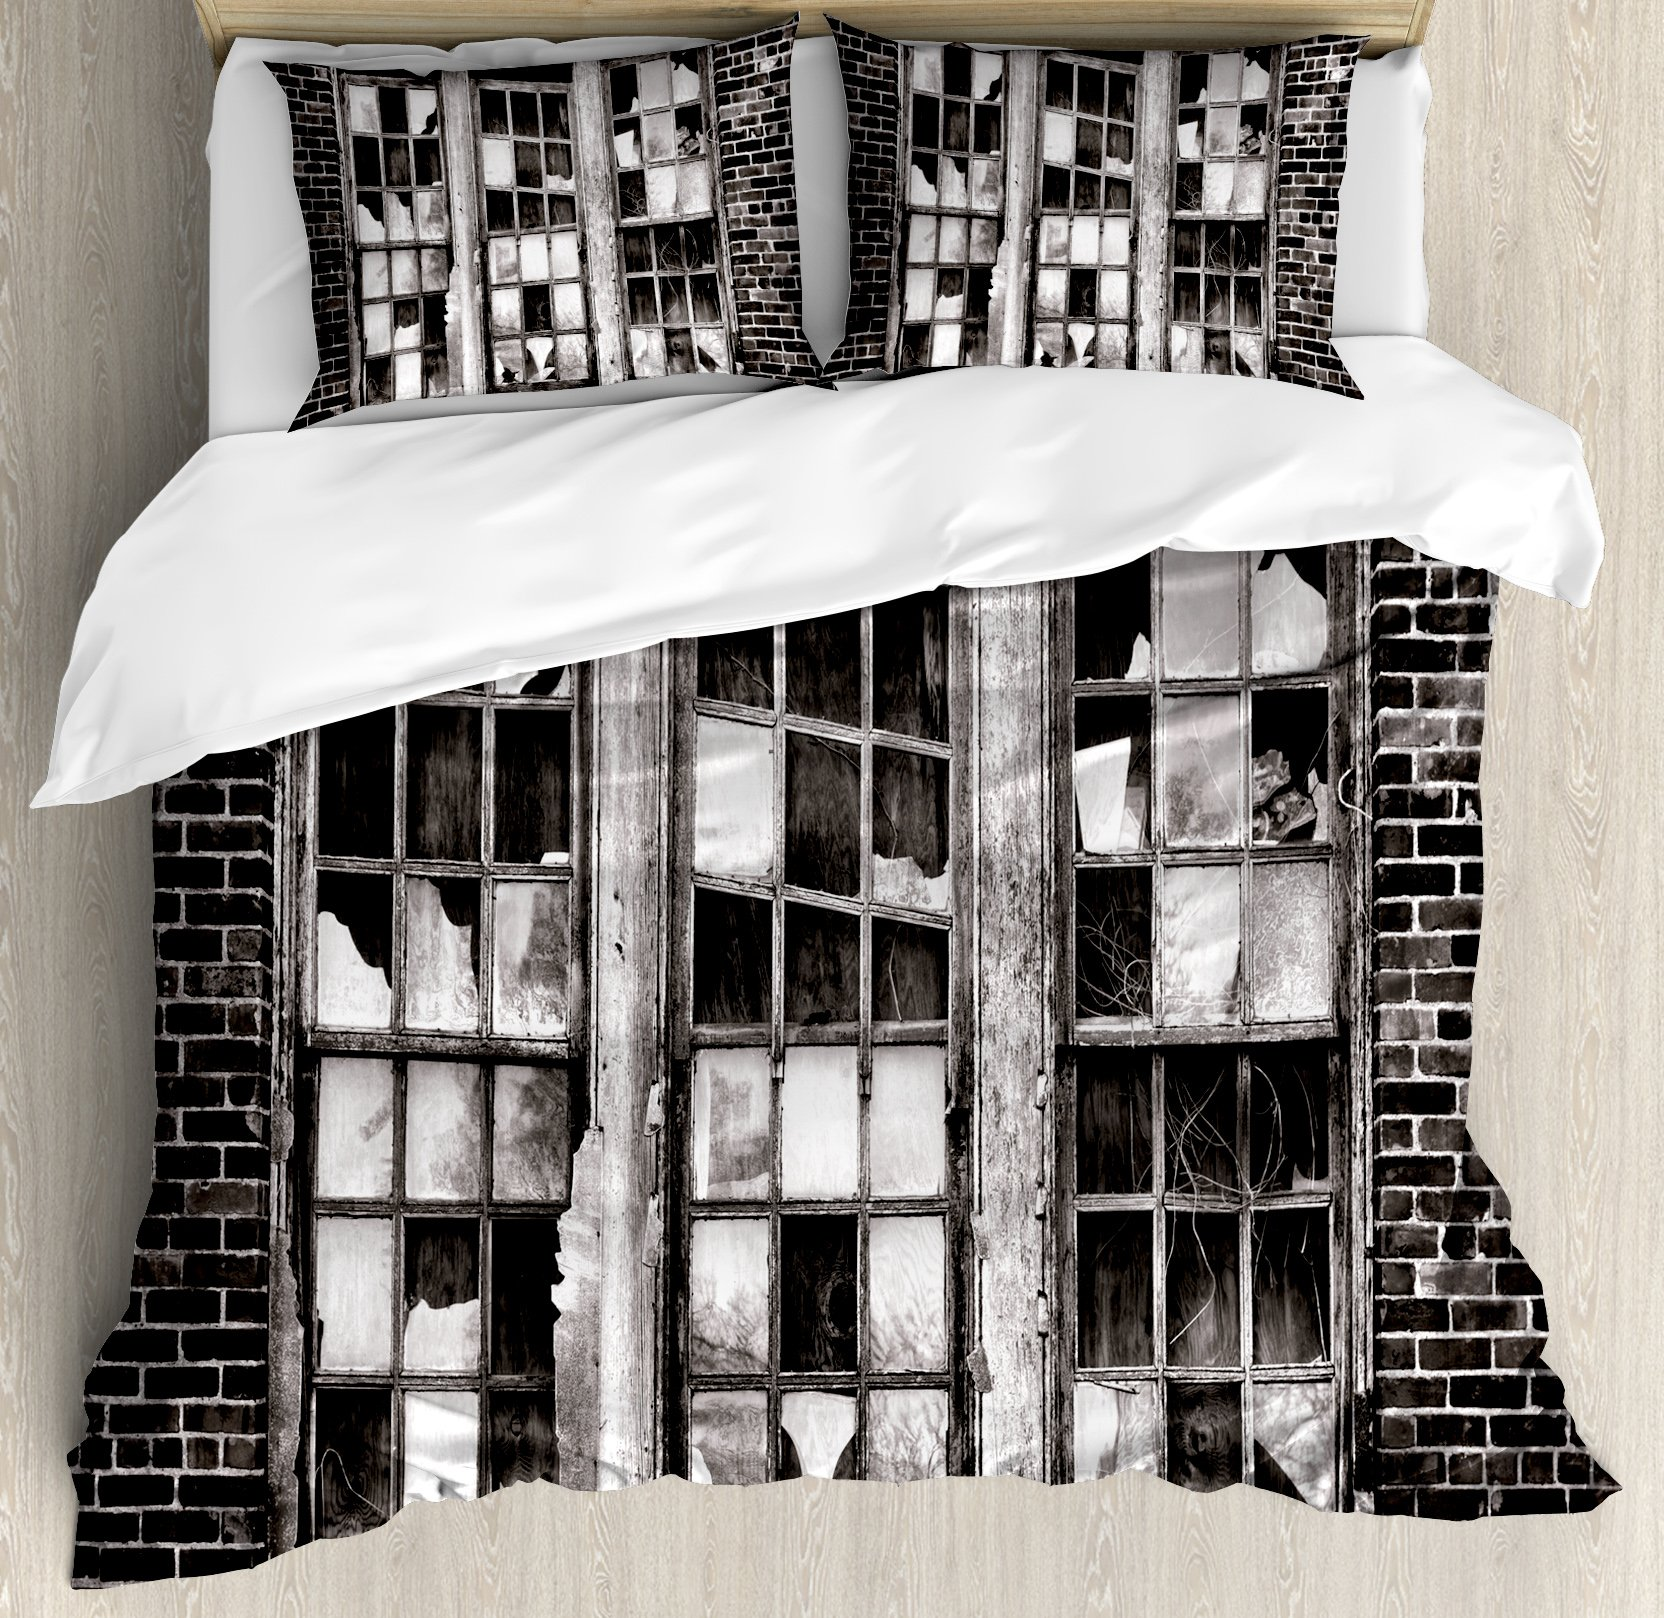 Industrial King Size Duvet Cover Set by Ambesonne, Broken Window Missing Glass Pane Derelict Blight Factory Brick Wall, Decorative 3 Piece Bedding Set with 2 Pillow Shams, Charcoal Grey Pale Grey